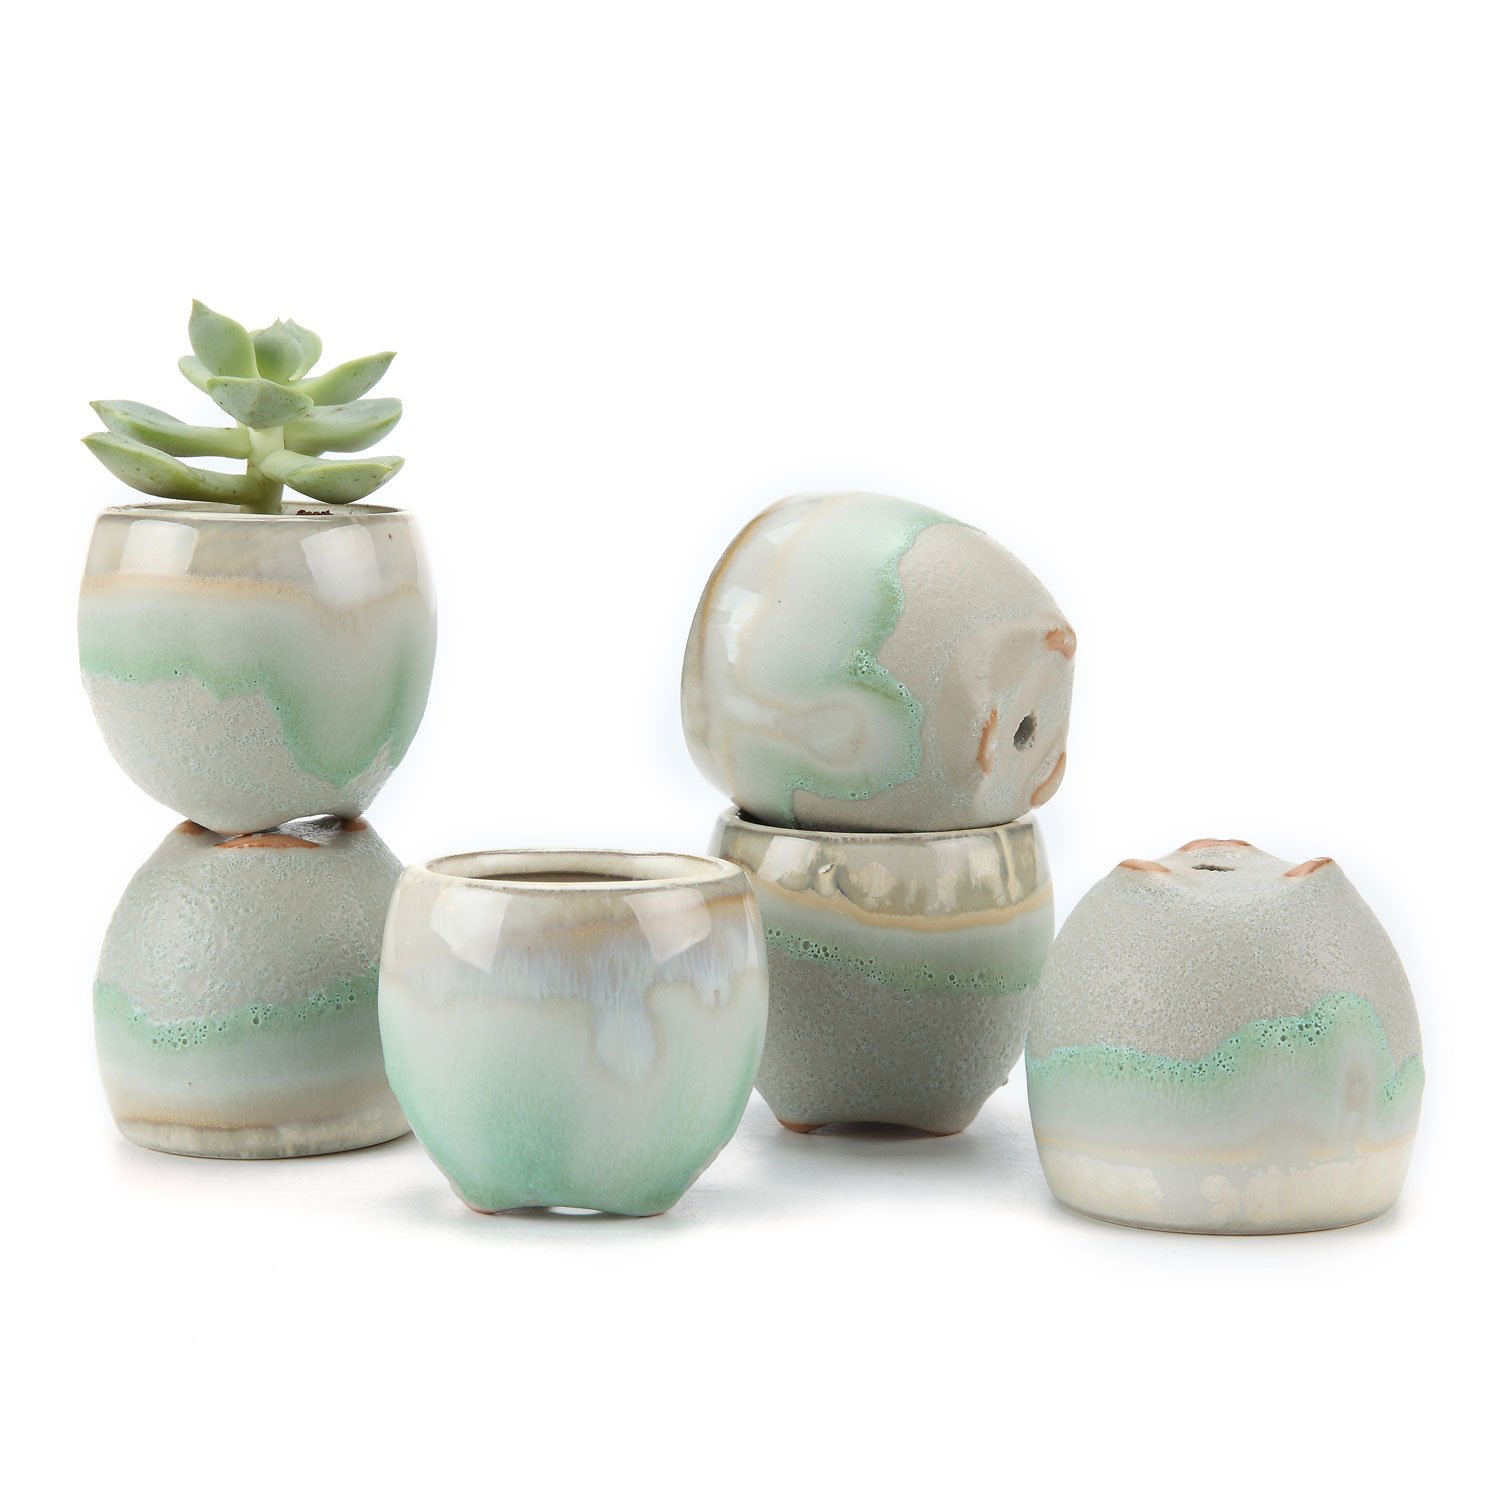 T4U 2.5 Inch Ceramic Flowing Glaze Solid Gray Base Serial Straight Mouth Shape Succulent Plant Pot/Cactus Plant Pot Flower Pot/Container/Planter Package 1 Pack of 6 by T4U